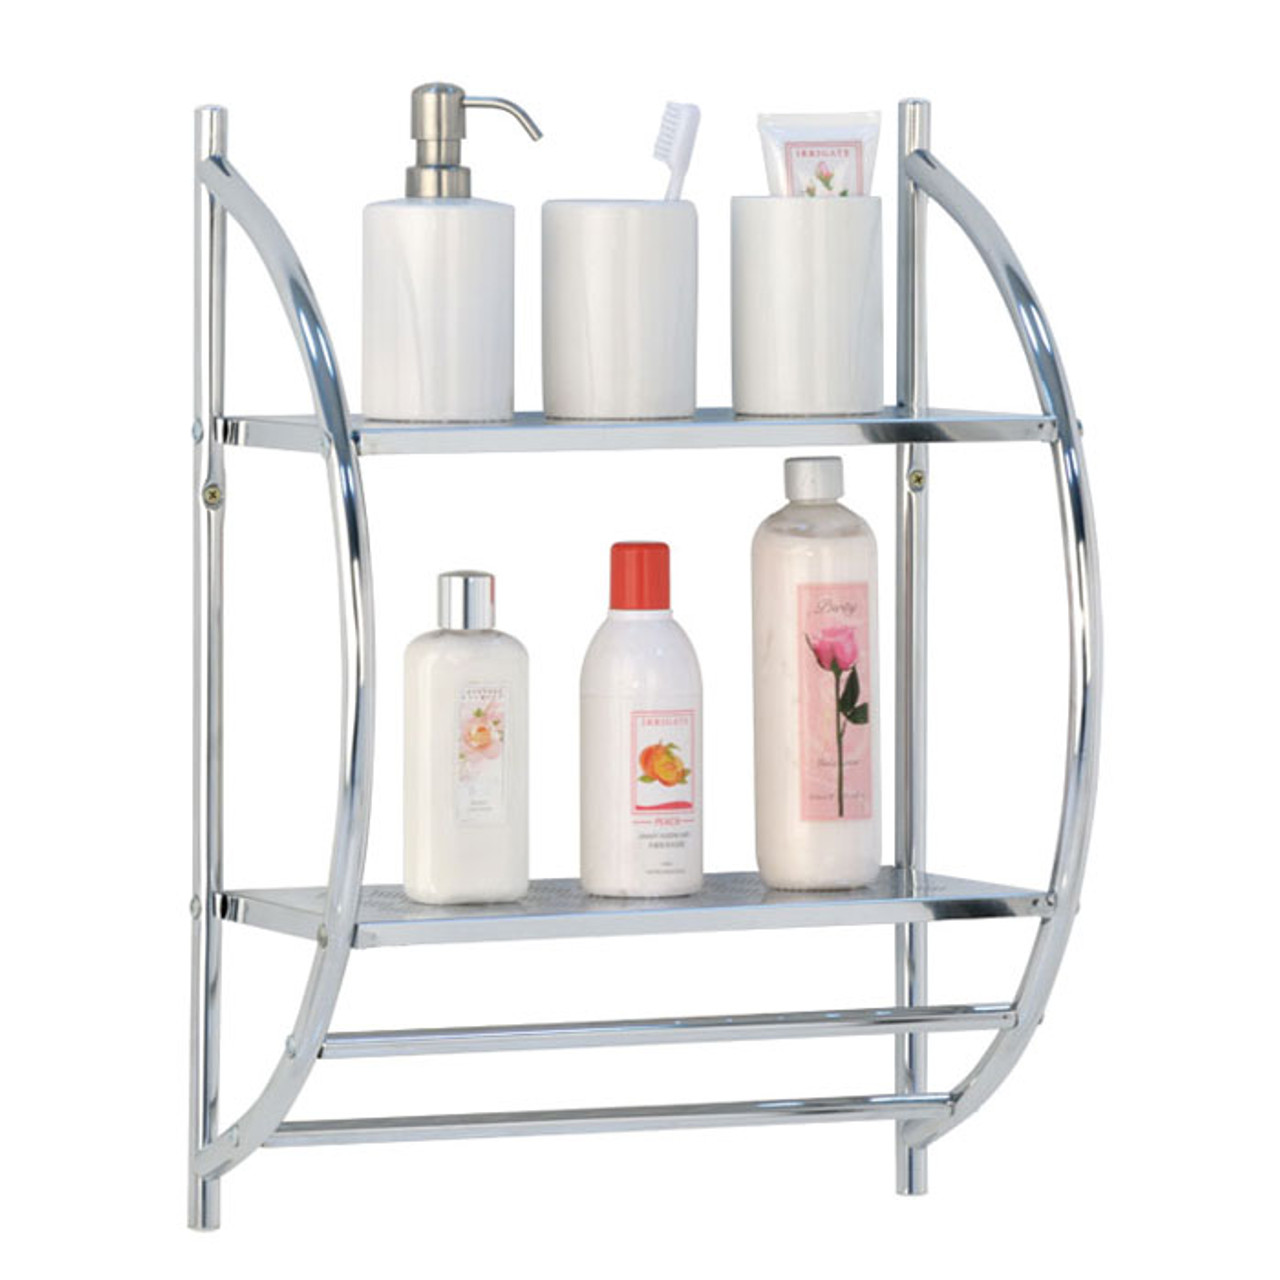 Bathroom Shelf - Solutions - Your Organized Living Store